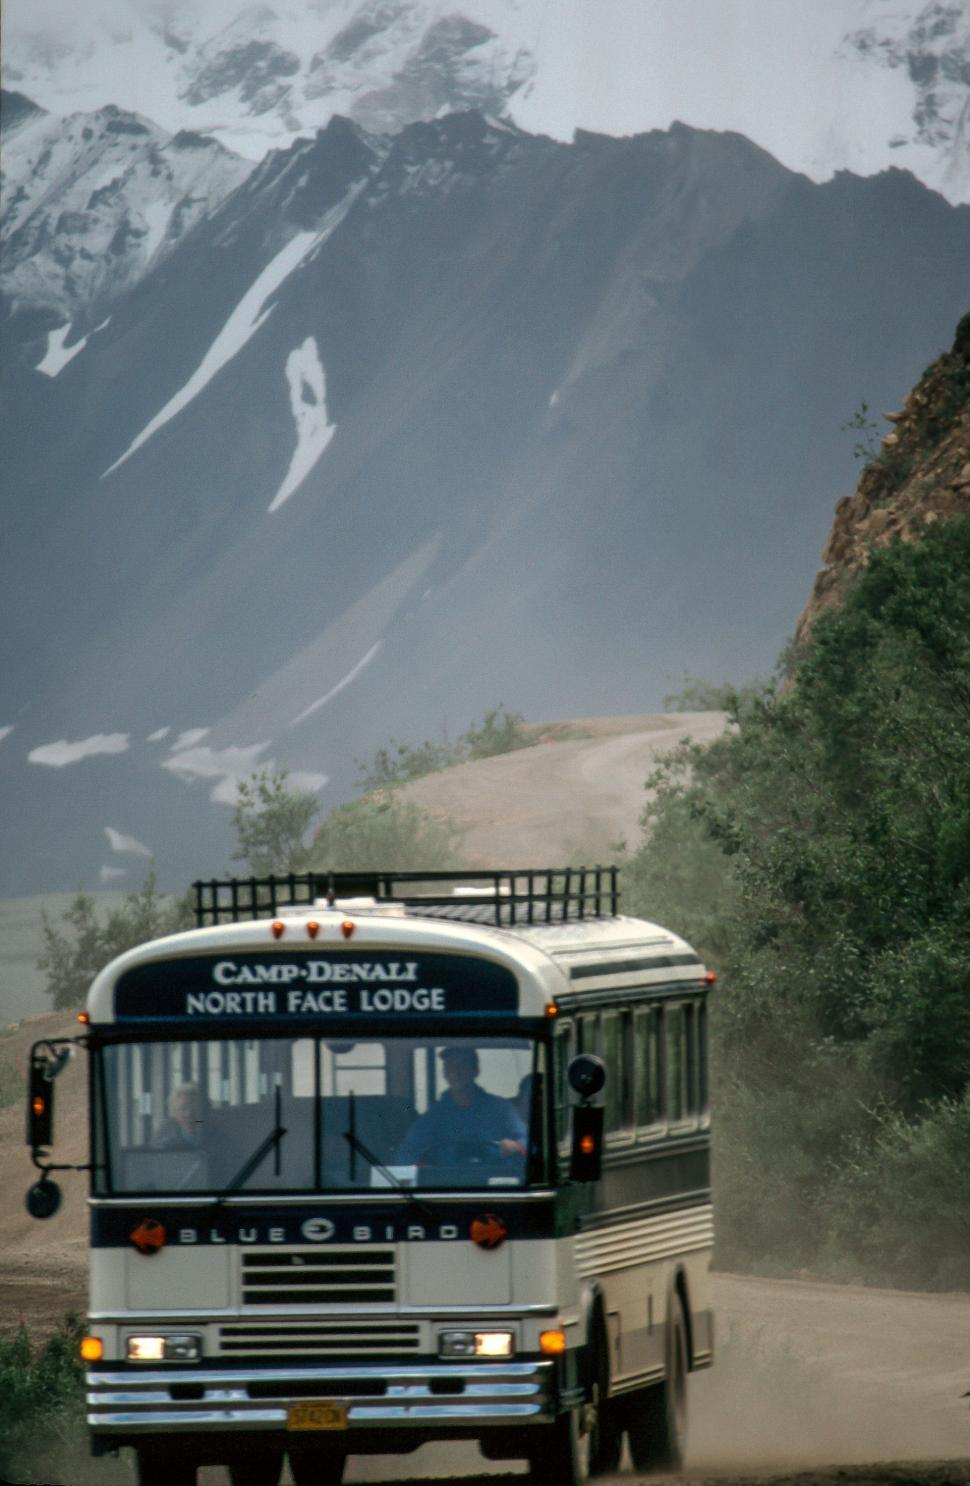 Download Free Stock HD Photo of Camp -Denali Bus at Denali National Park Online